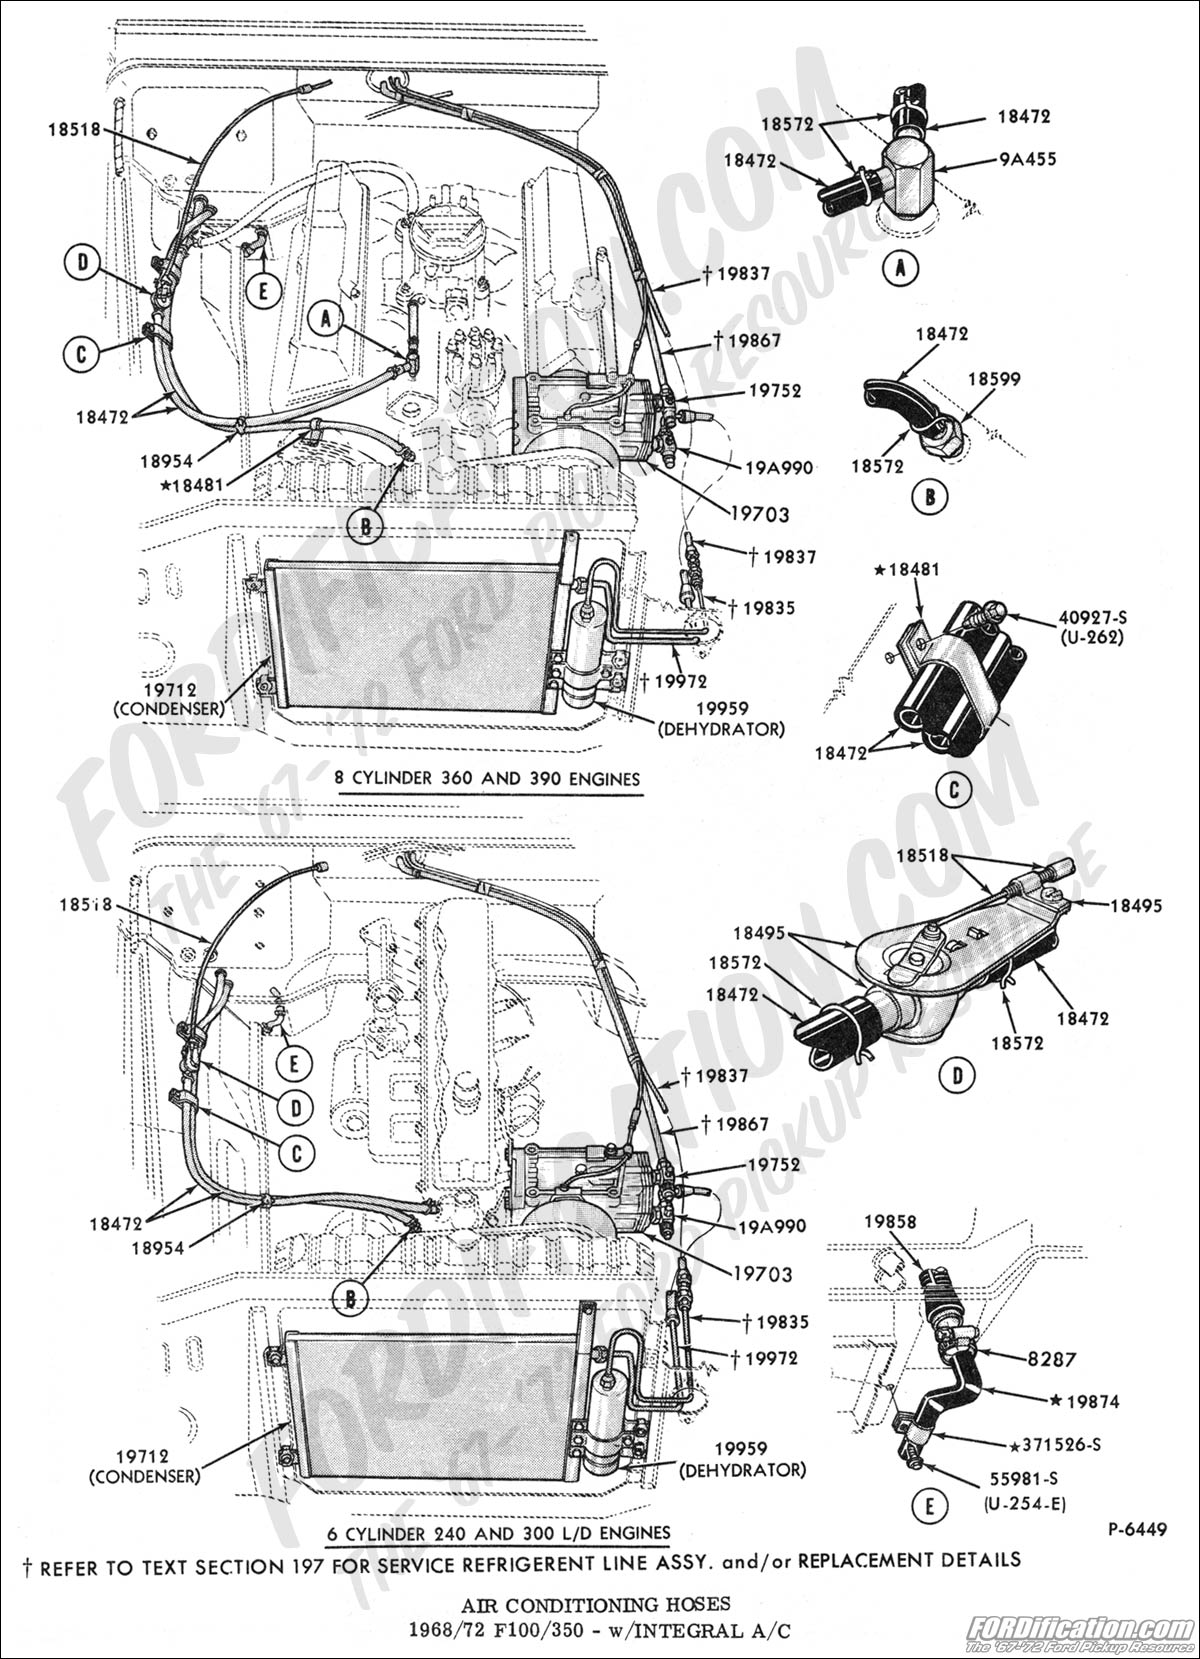 Ford Truck Part Numbers (Air Conditioning, Factory